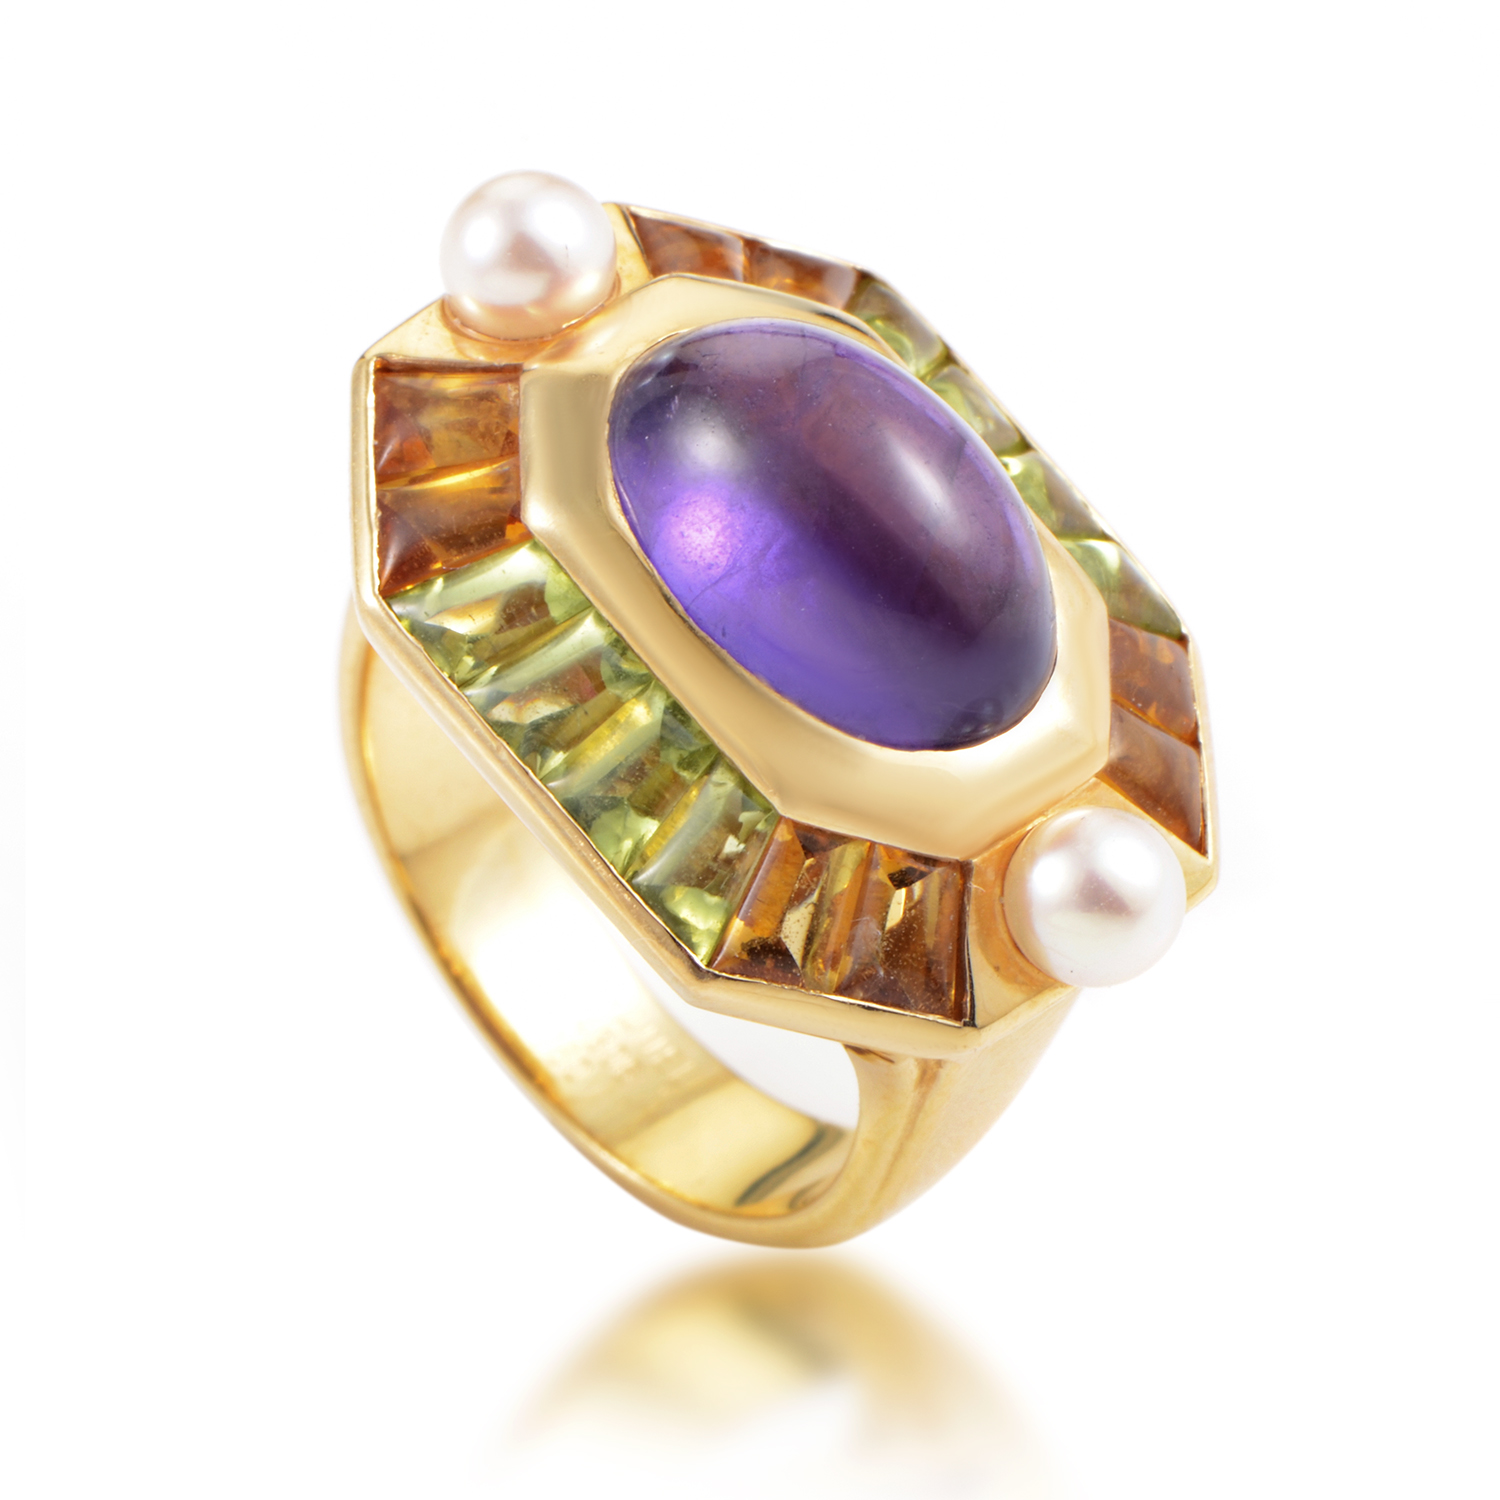 Chanel Baroque Women's 18K Yellow Gold Multi-Gemstone Ring